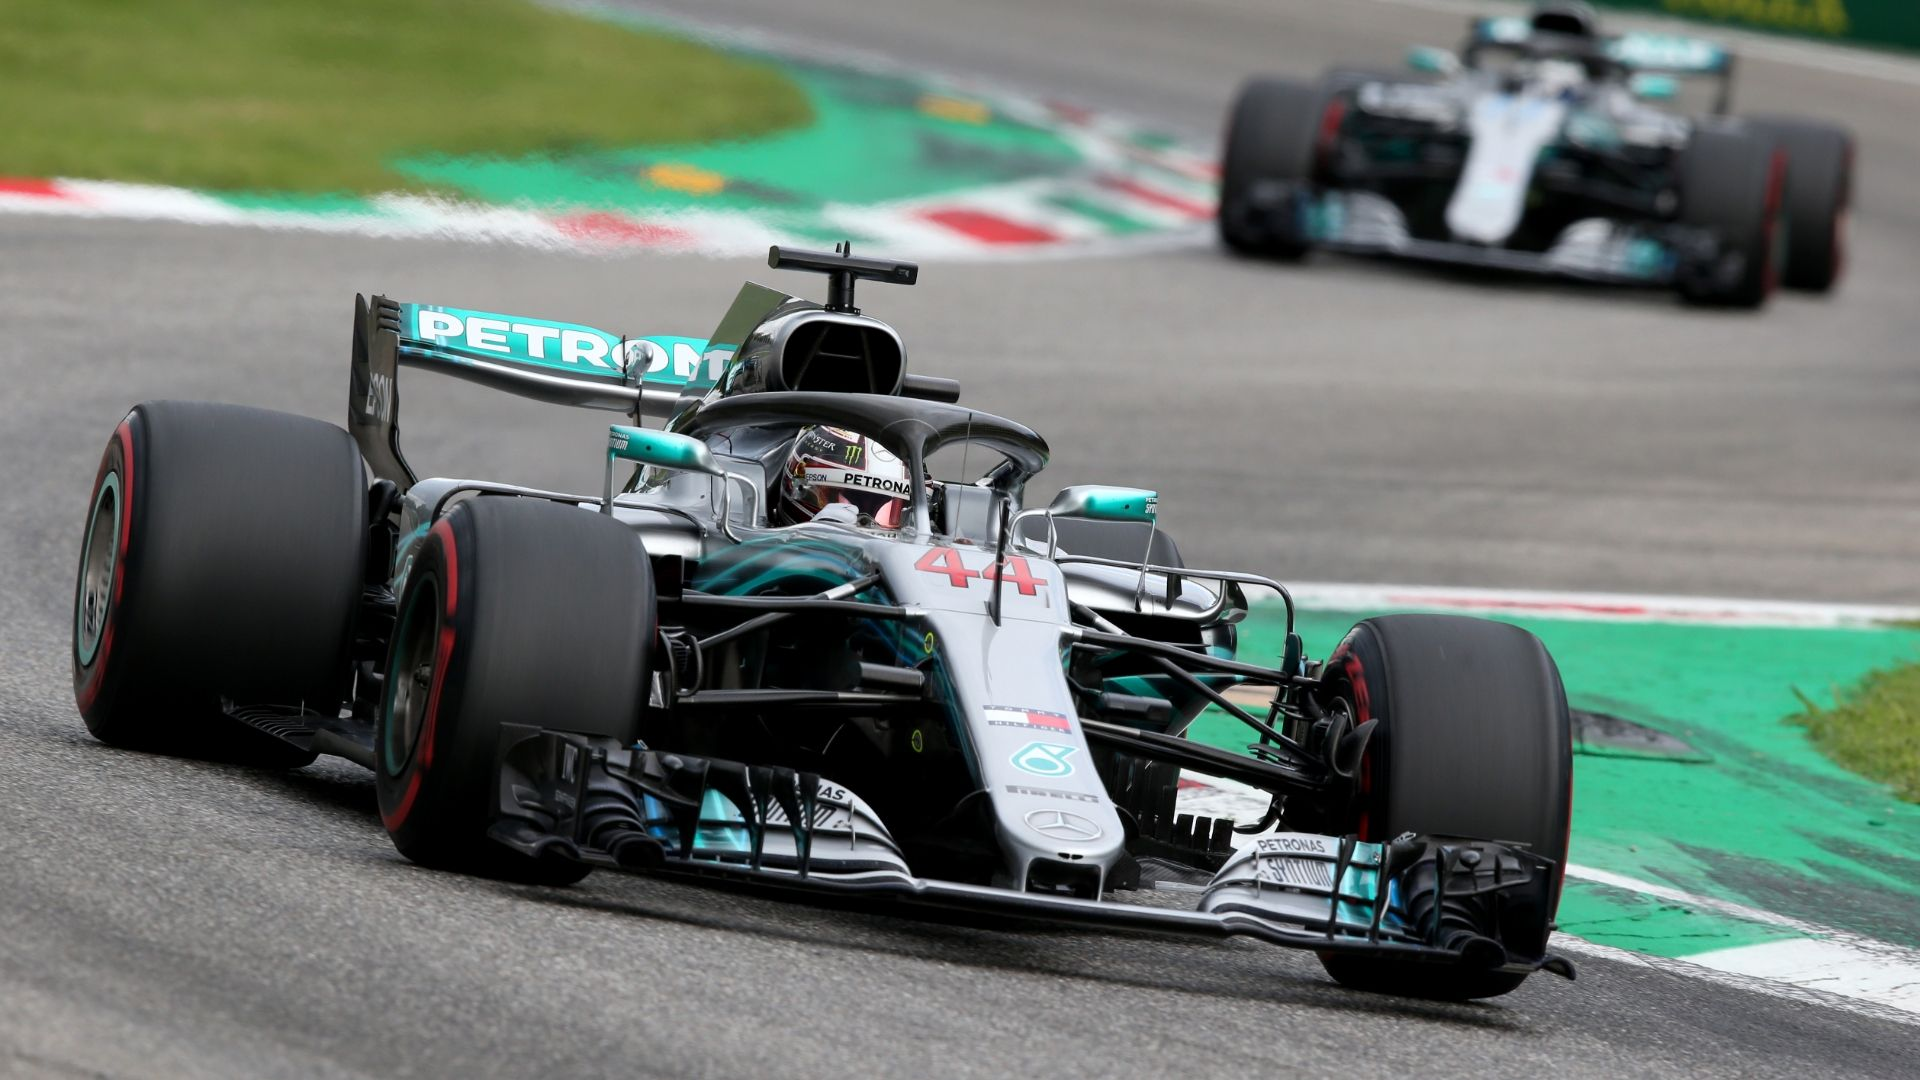 Was Mercedes wrong to use Bottas to help Hamilton win?